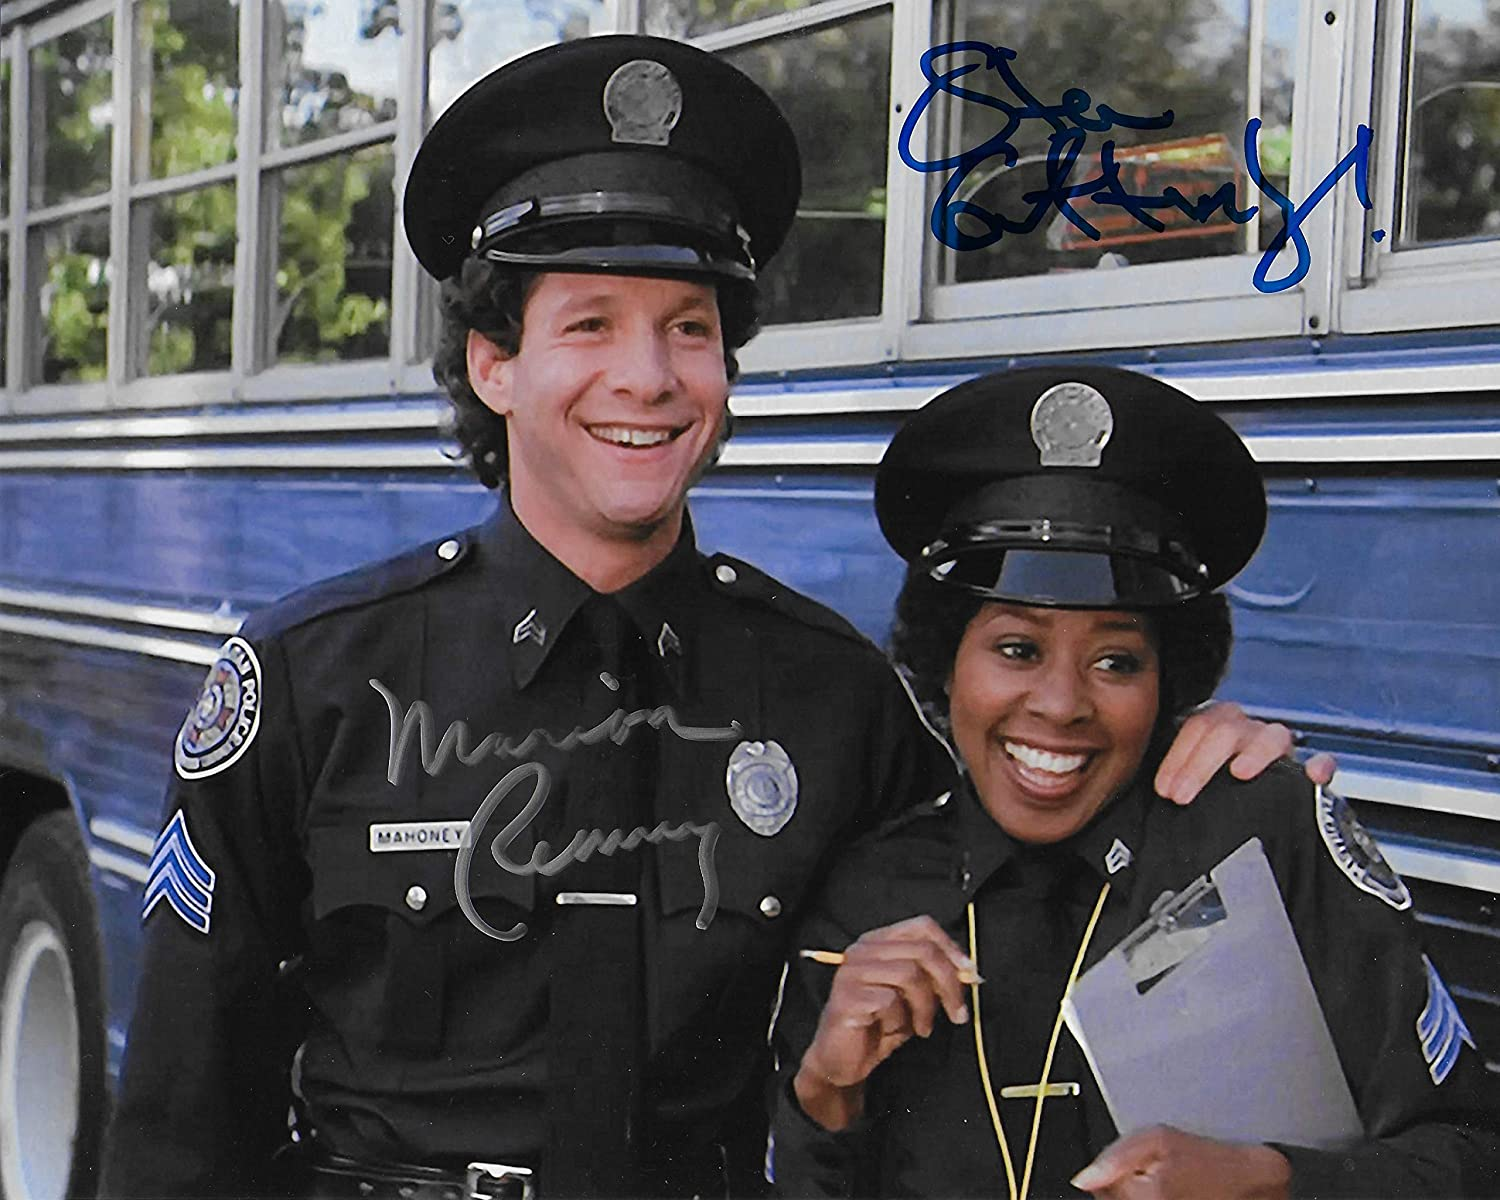 Steve Guttenberg Marion Ramsey Police Academy Original Autographed 8x10 Photo 2 At Amazon S Entertainment Collectibles Store